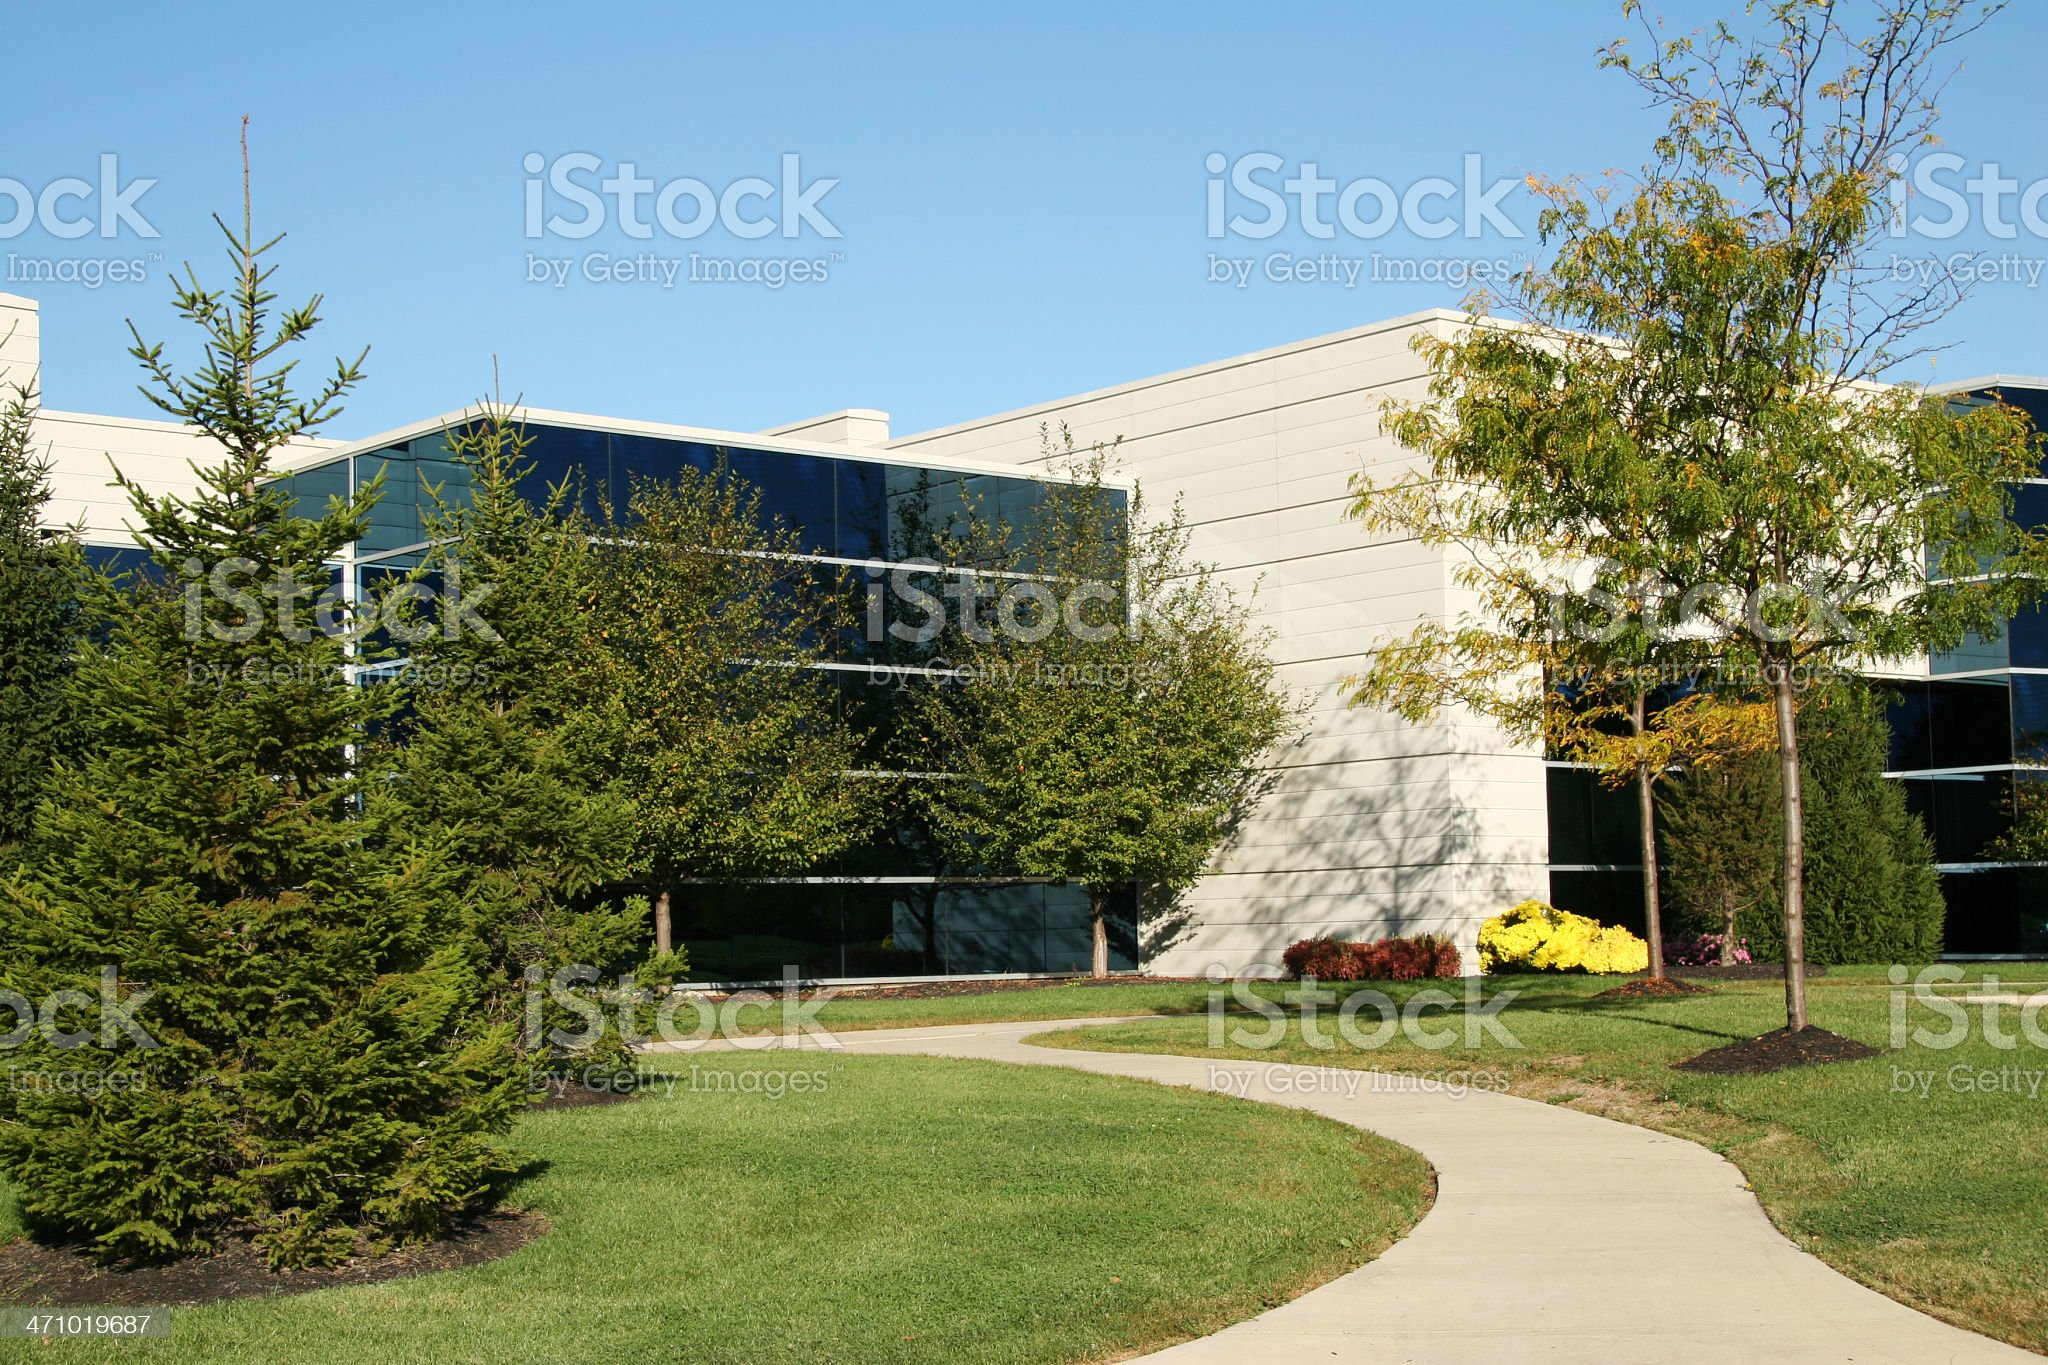 Landscaped Sidewalk To Business Building royalty-free stock photo